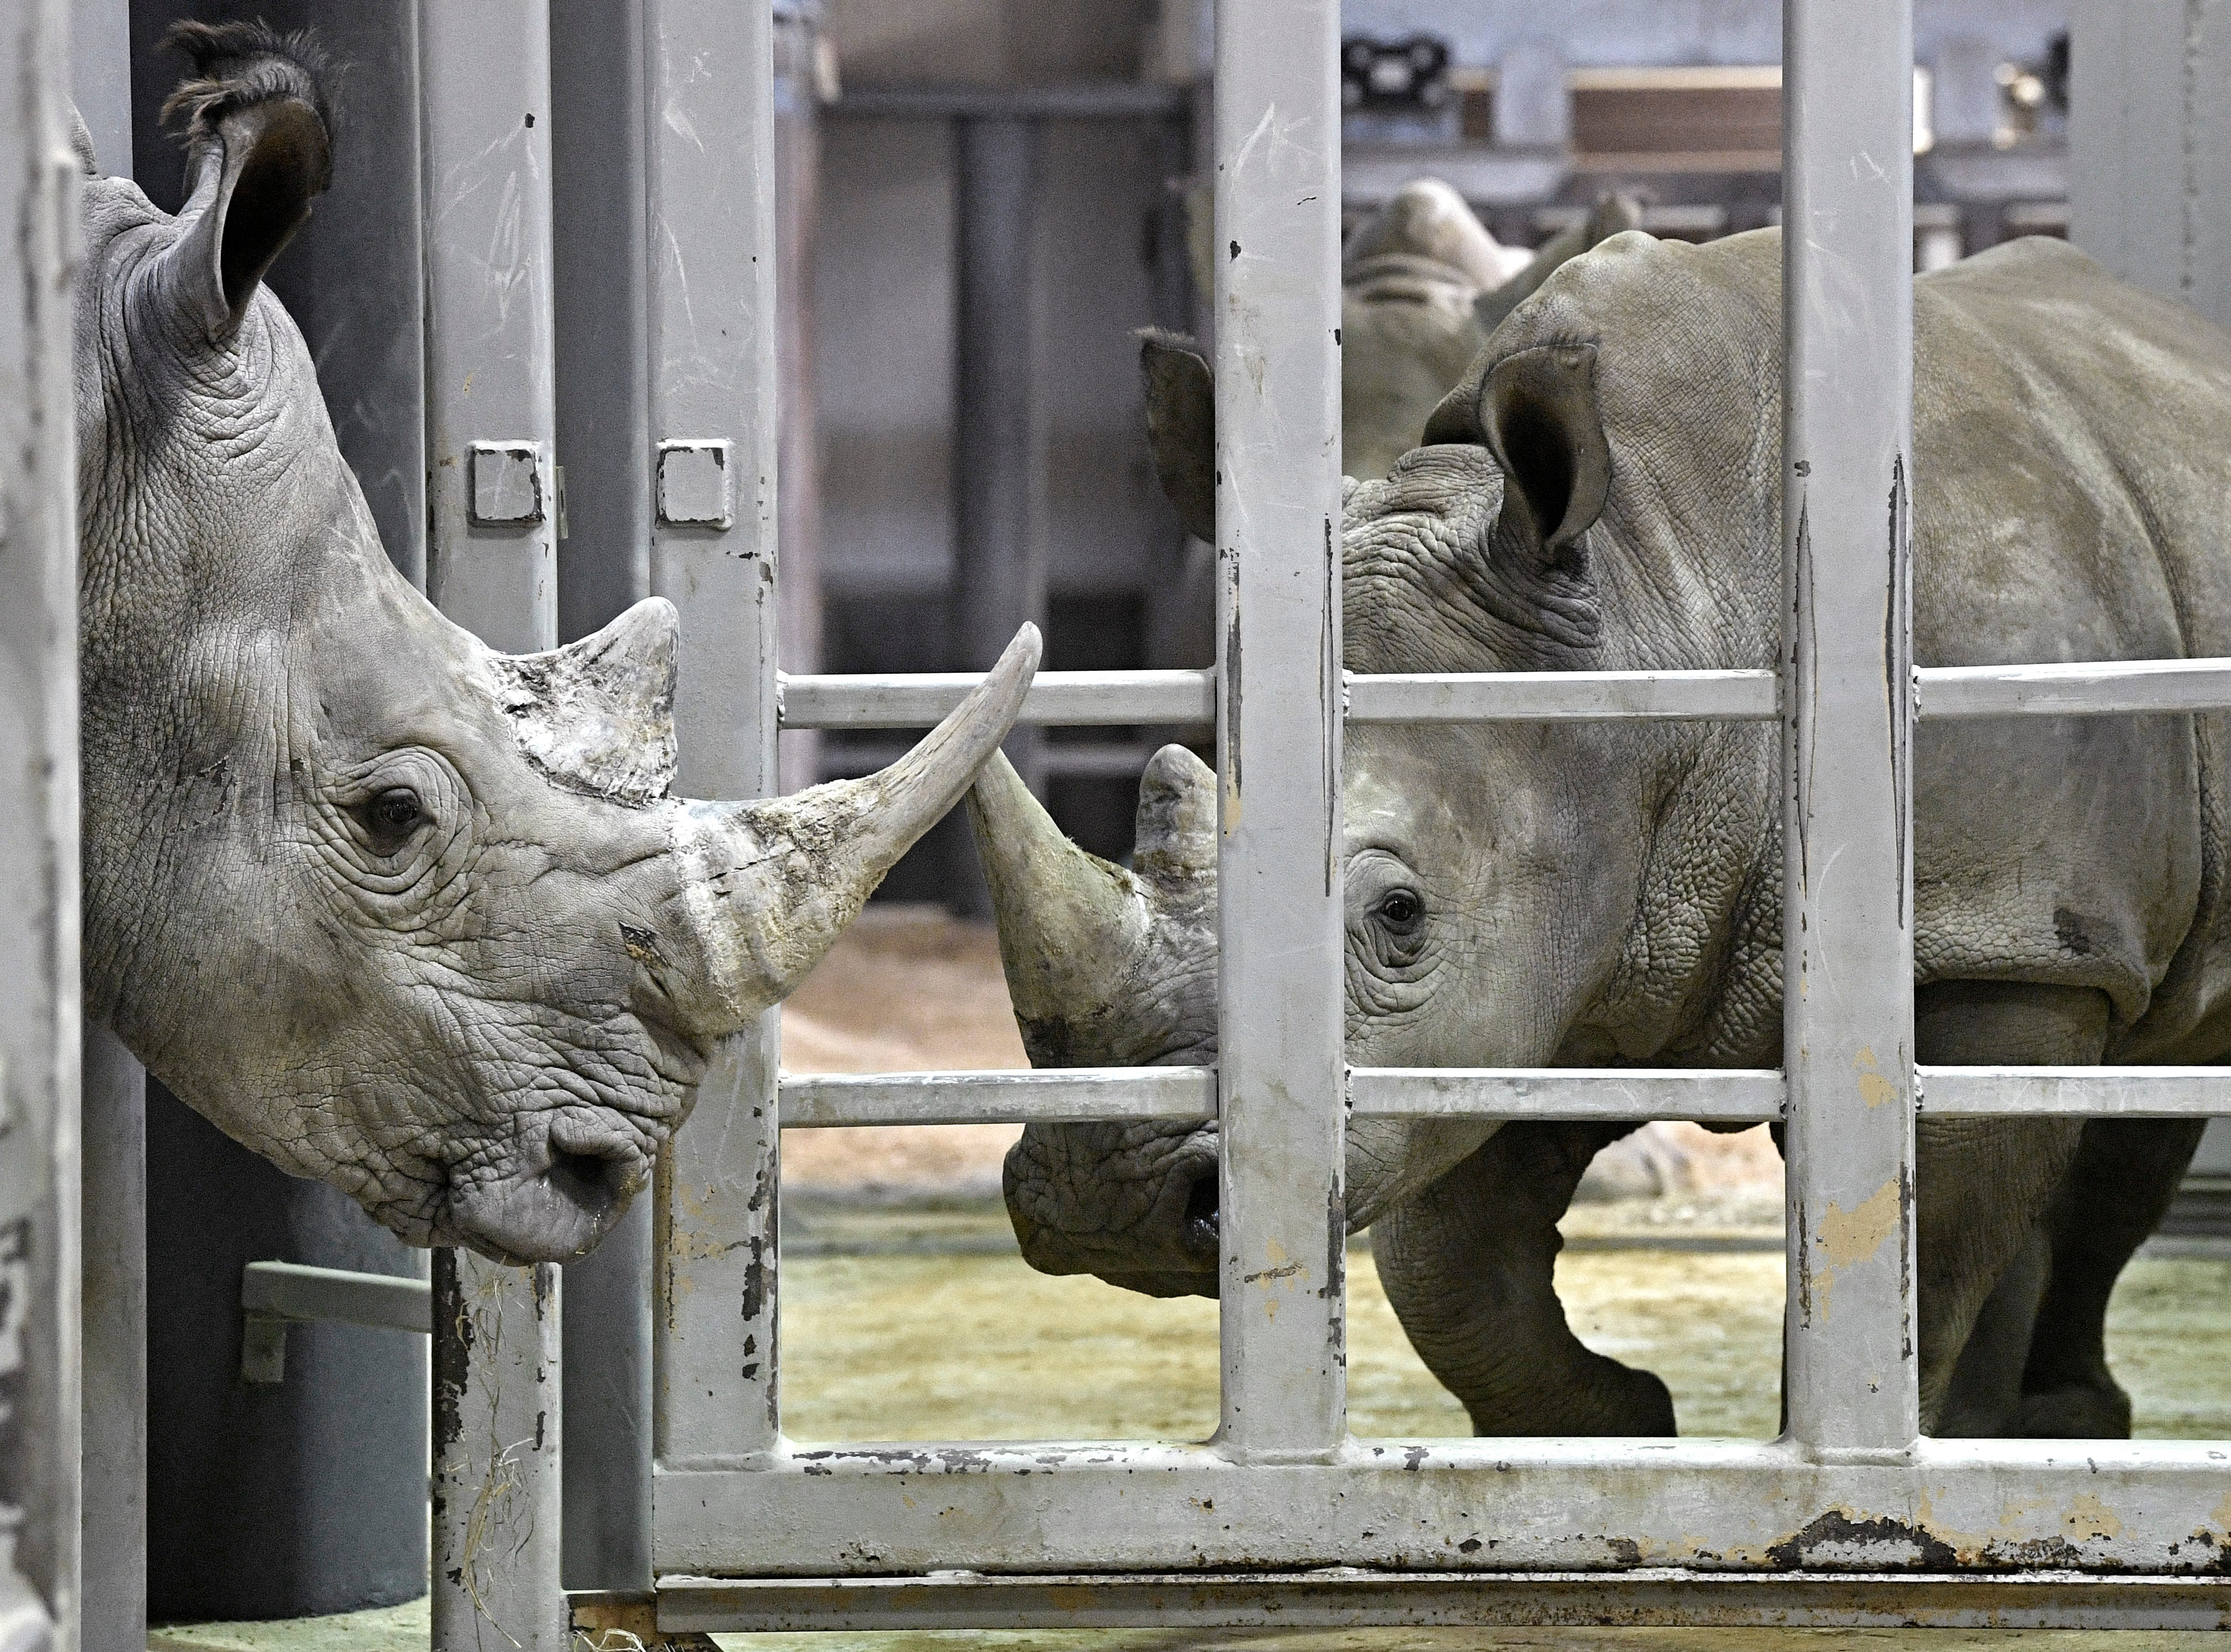 A male White Rhino and a female can only look at one another through bars in their enclosures for now.The male will be a mate for the four female rhinos at the Nashville Zoo and has recently been introduced to the females although in different enclosures. Thursday, Feb. 7, 2019, in Nashville, Tenn.